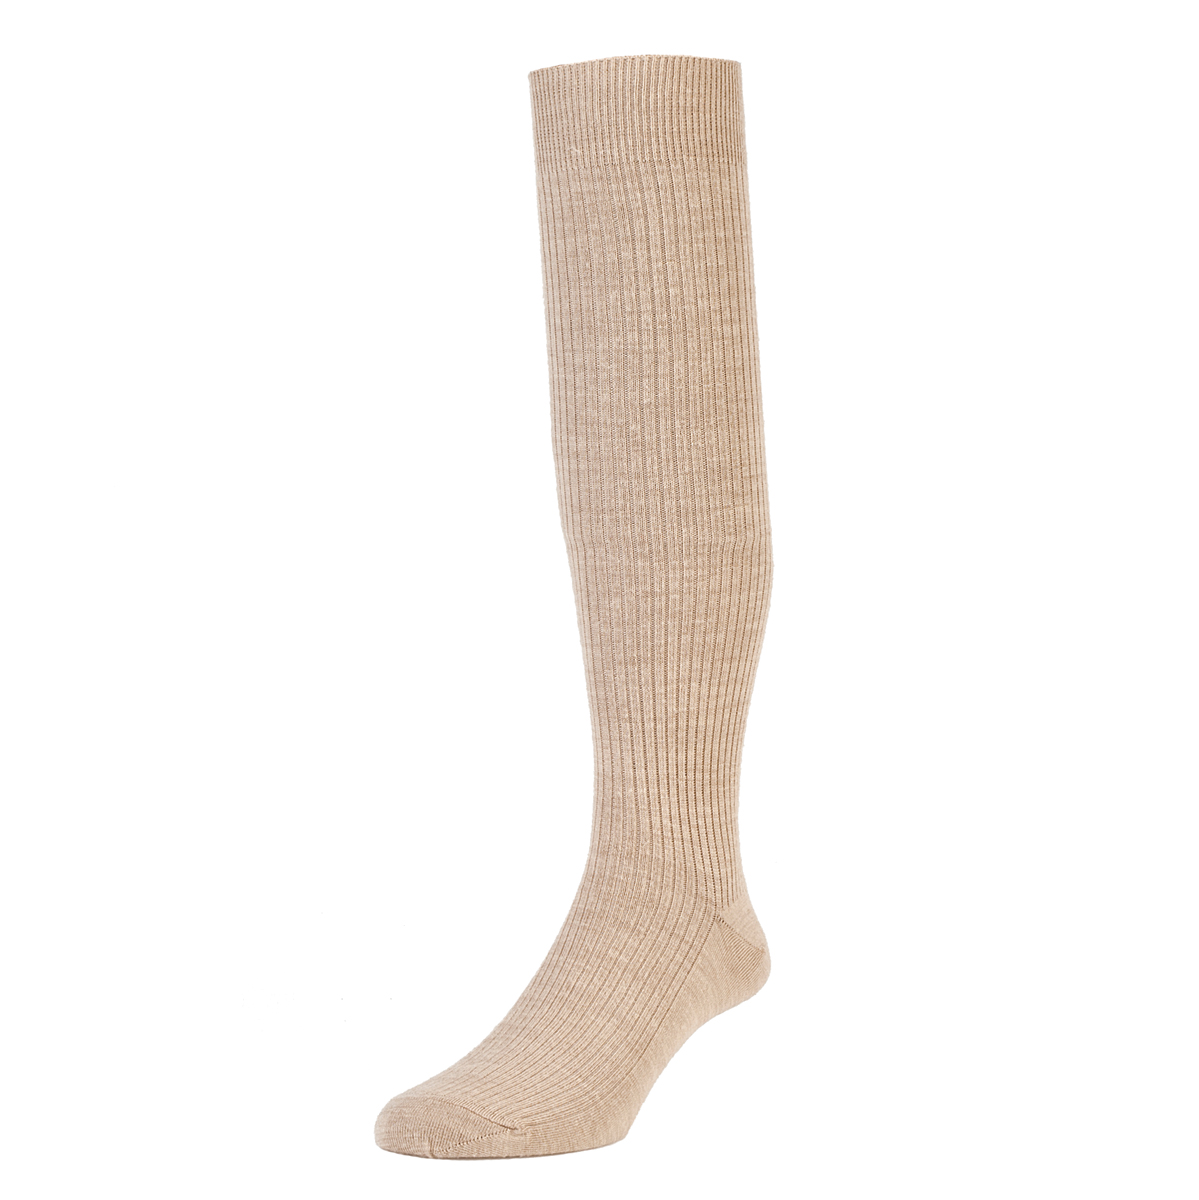 HJ Hall Immaculate Long Knee length Socks, 6-11UK Oatmeal HJ77